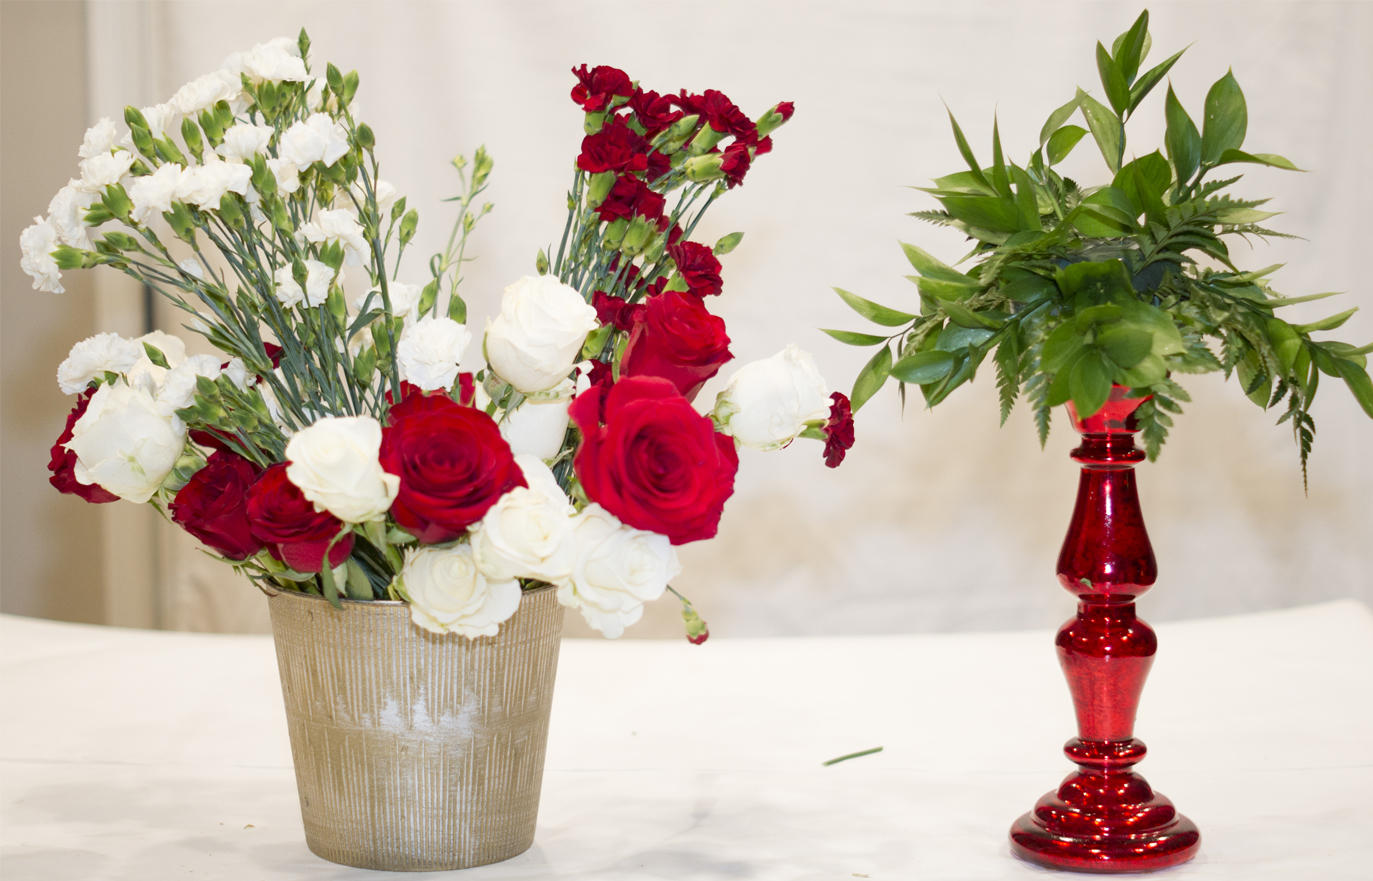 How to create candlestick floral centerpiece